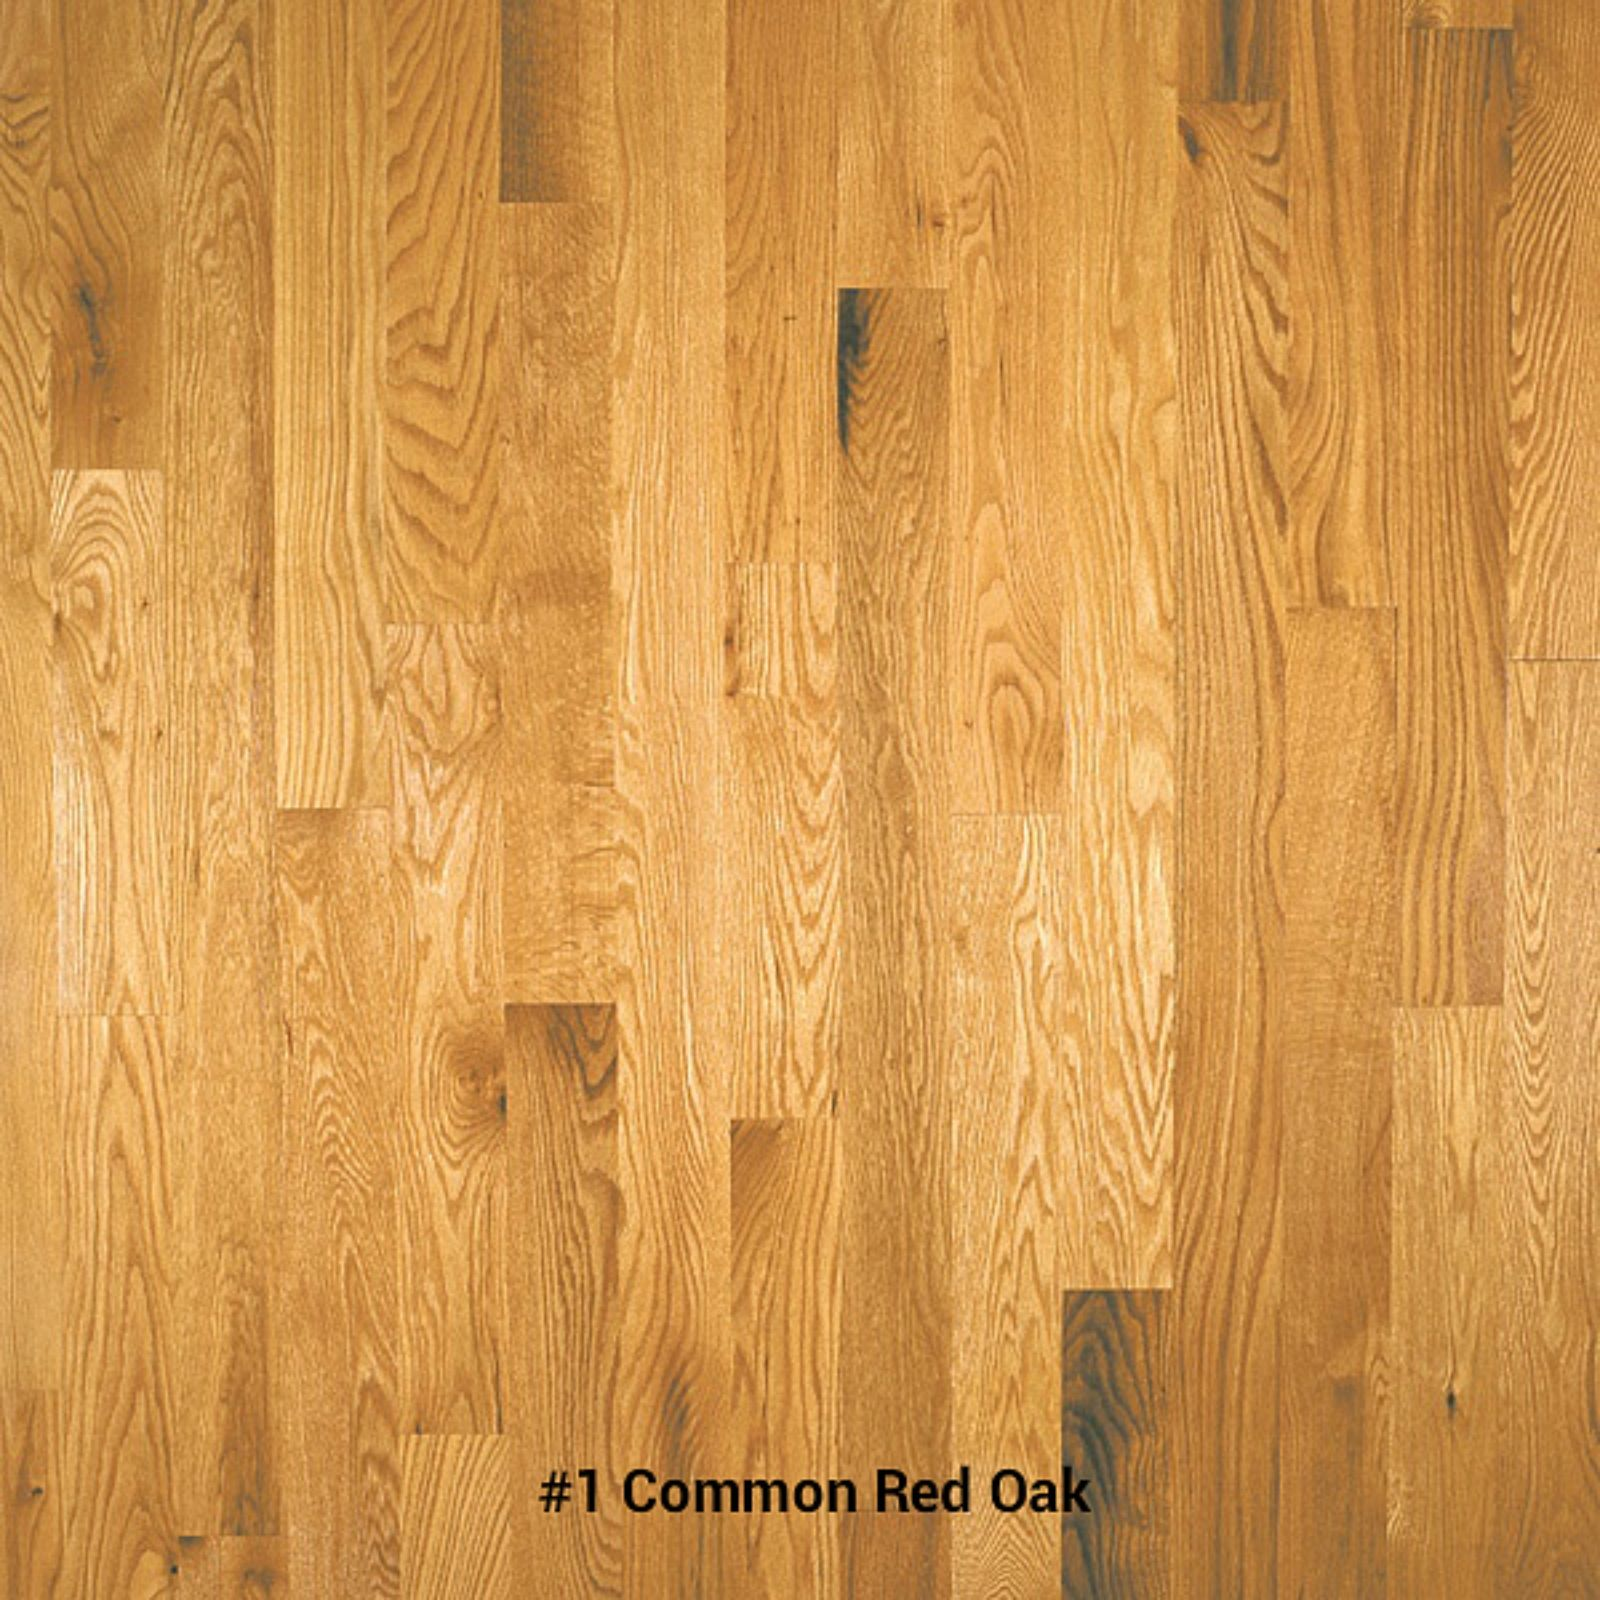 1 Common Red Oak Hardwood Flooring Oak Hardwood Flooring Unfinished Hardwood Flooring Red Oak Floors